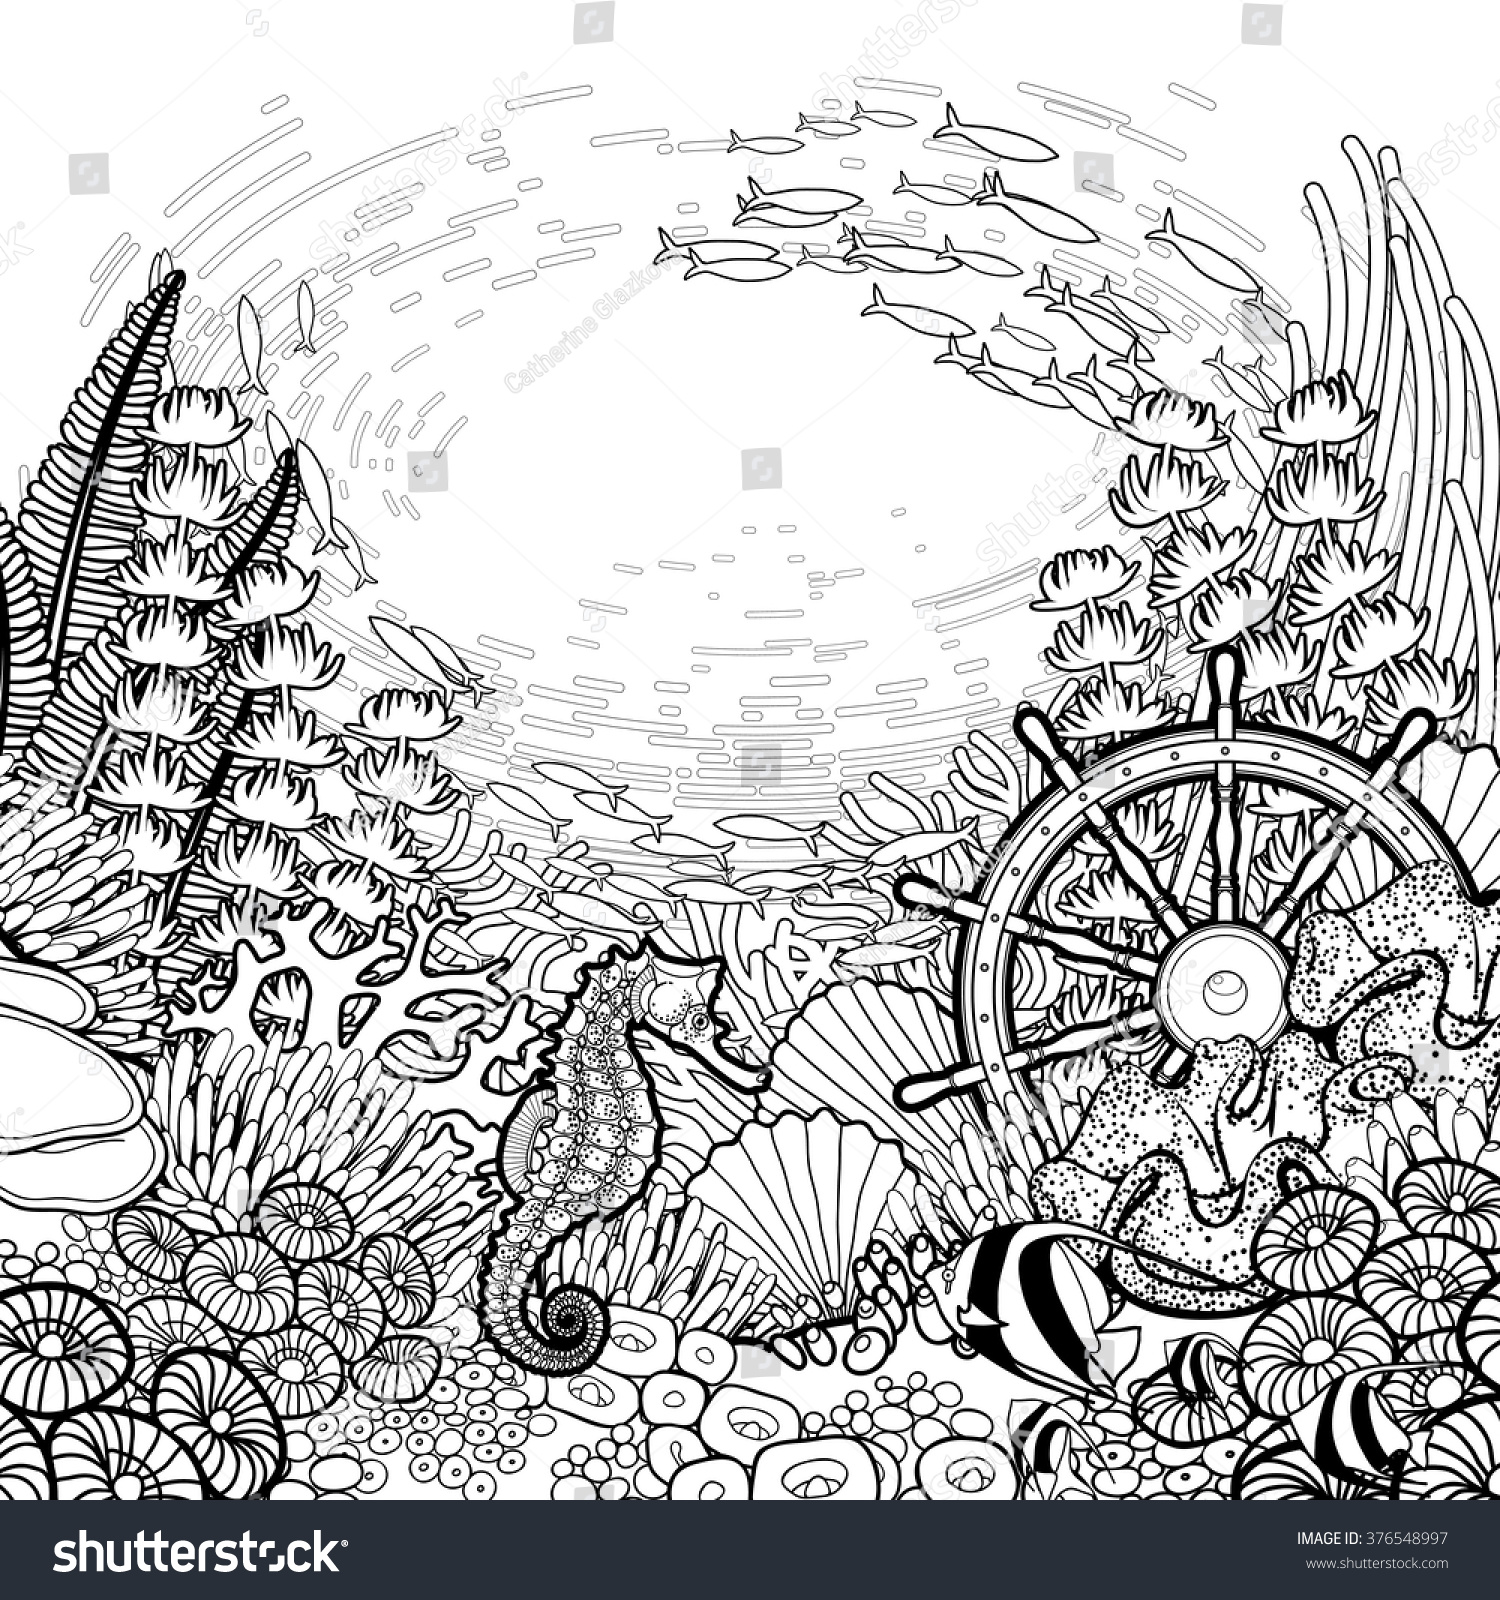 ocean backround coloring pages - photo #12